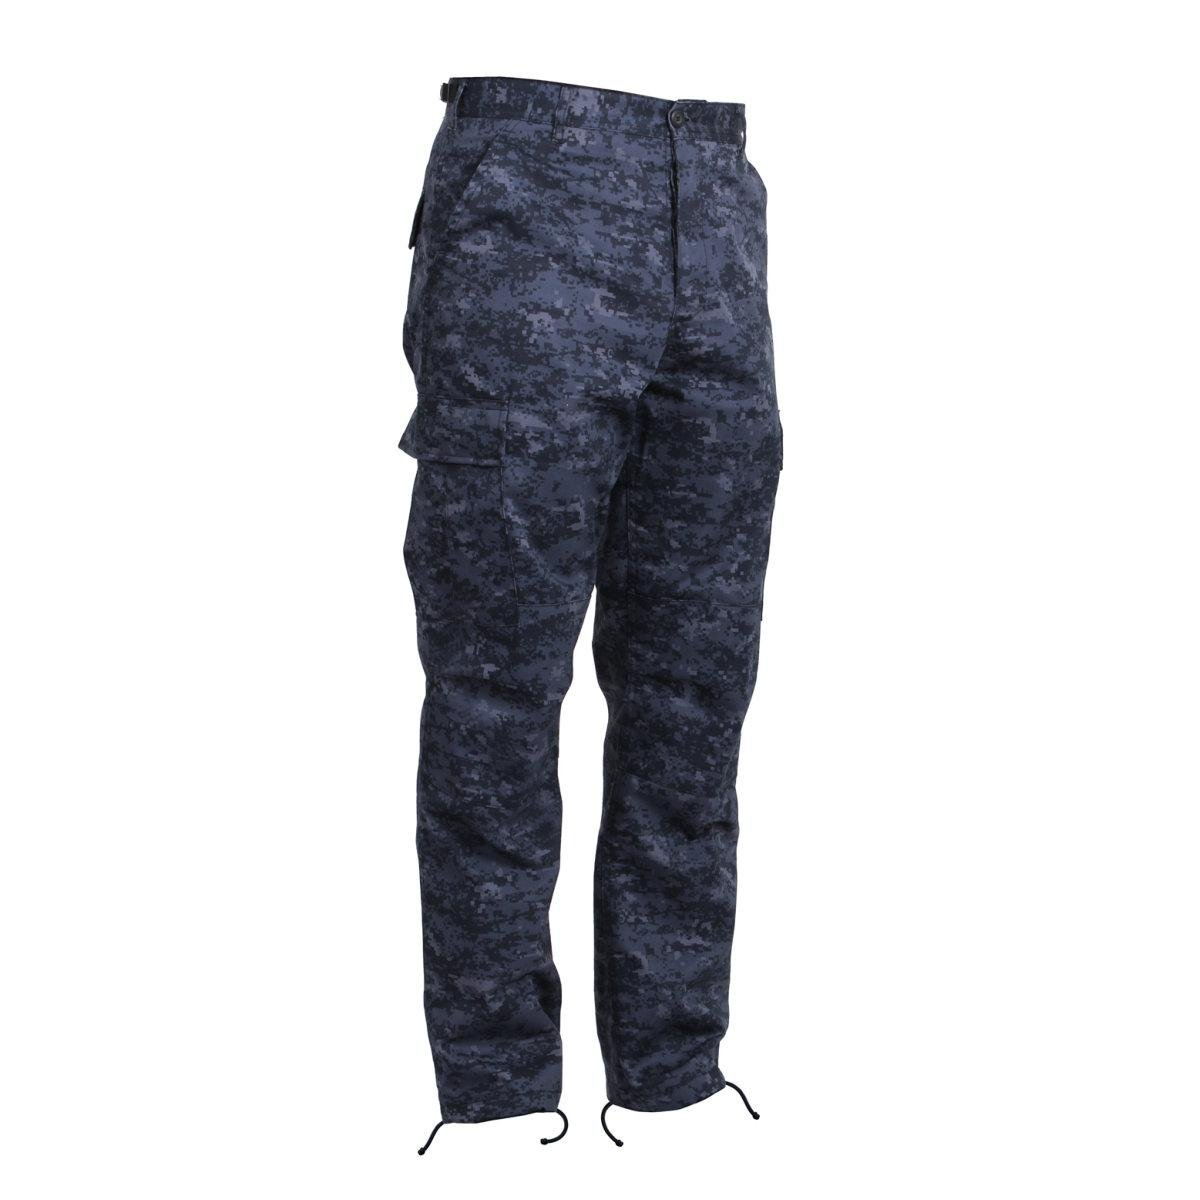 Rothco Tactical BDU Pants, Midnight Digital Camo, Small 15129